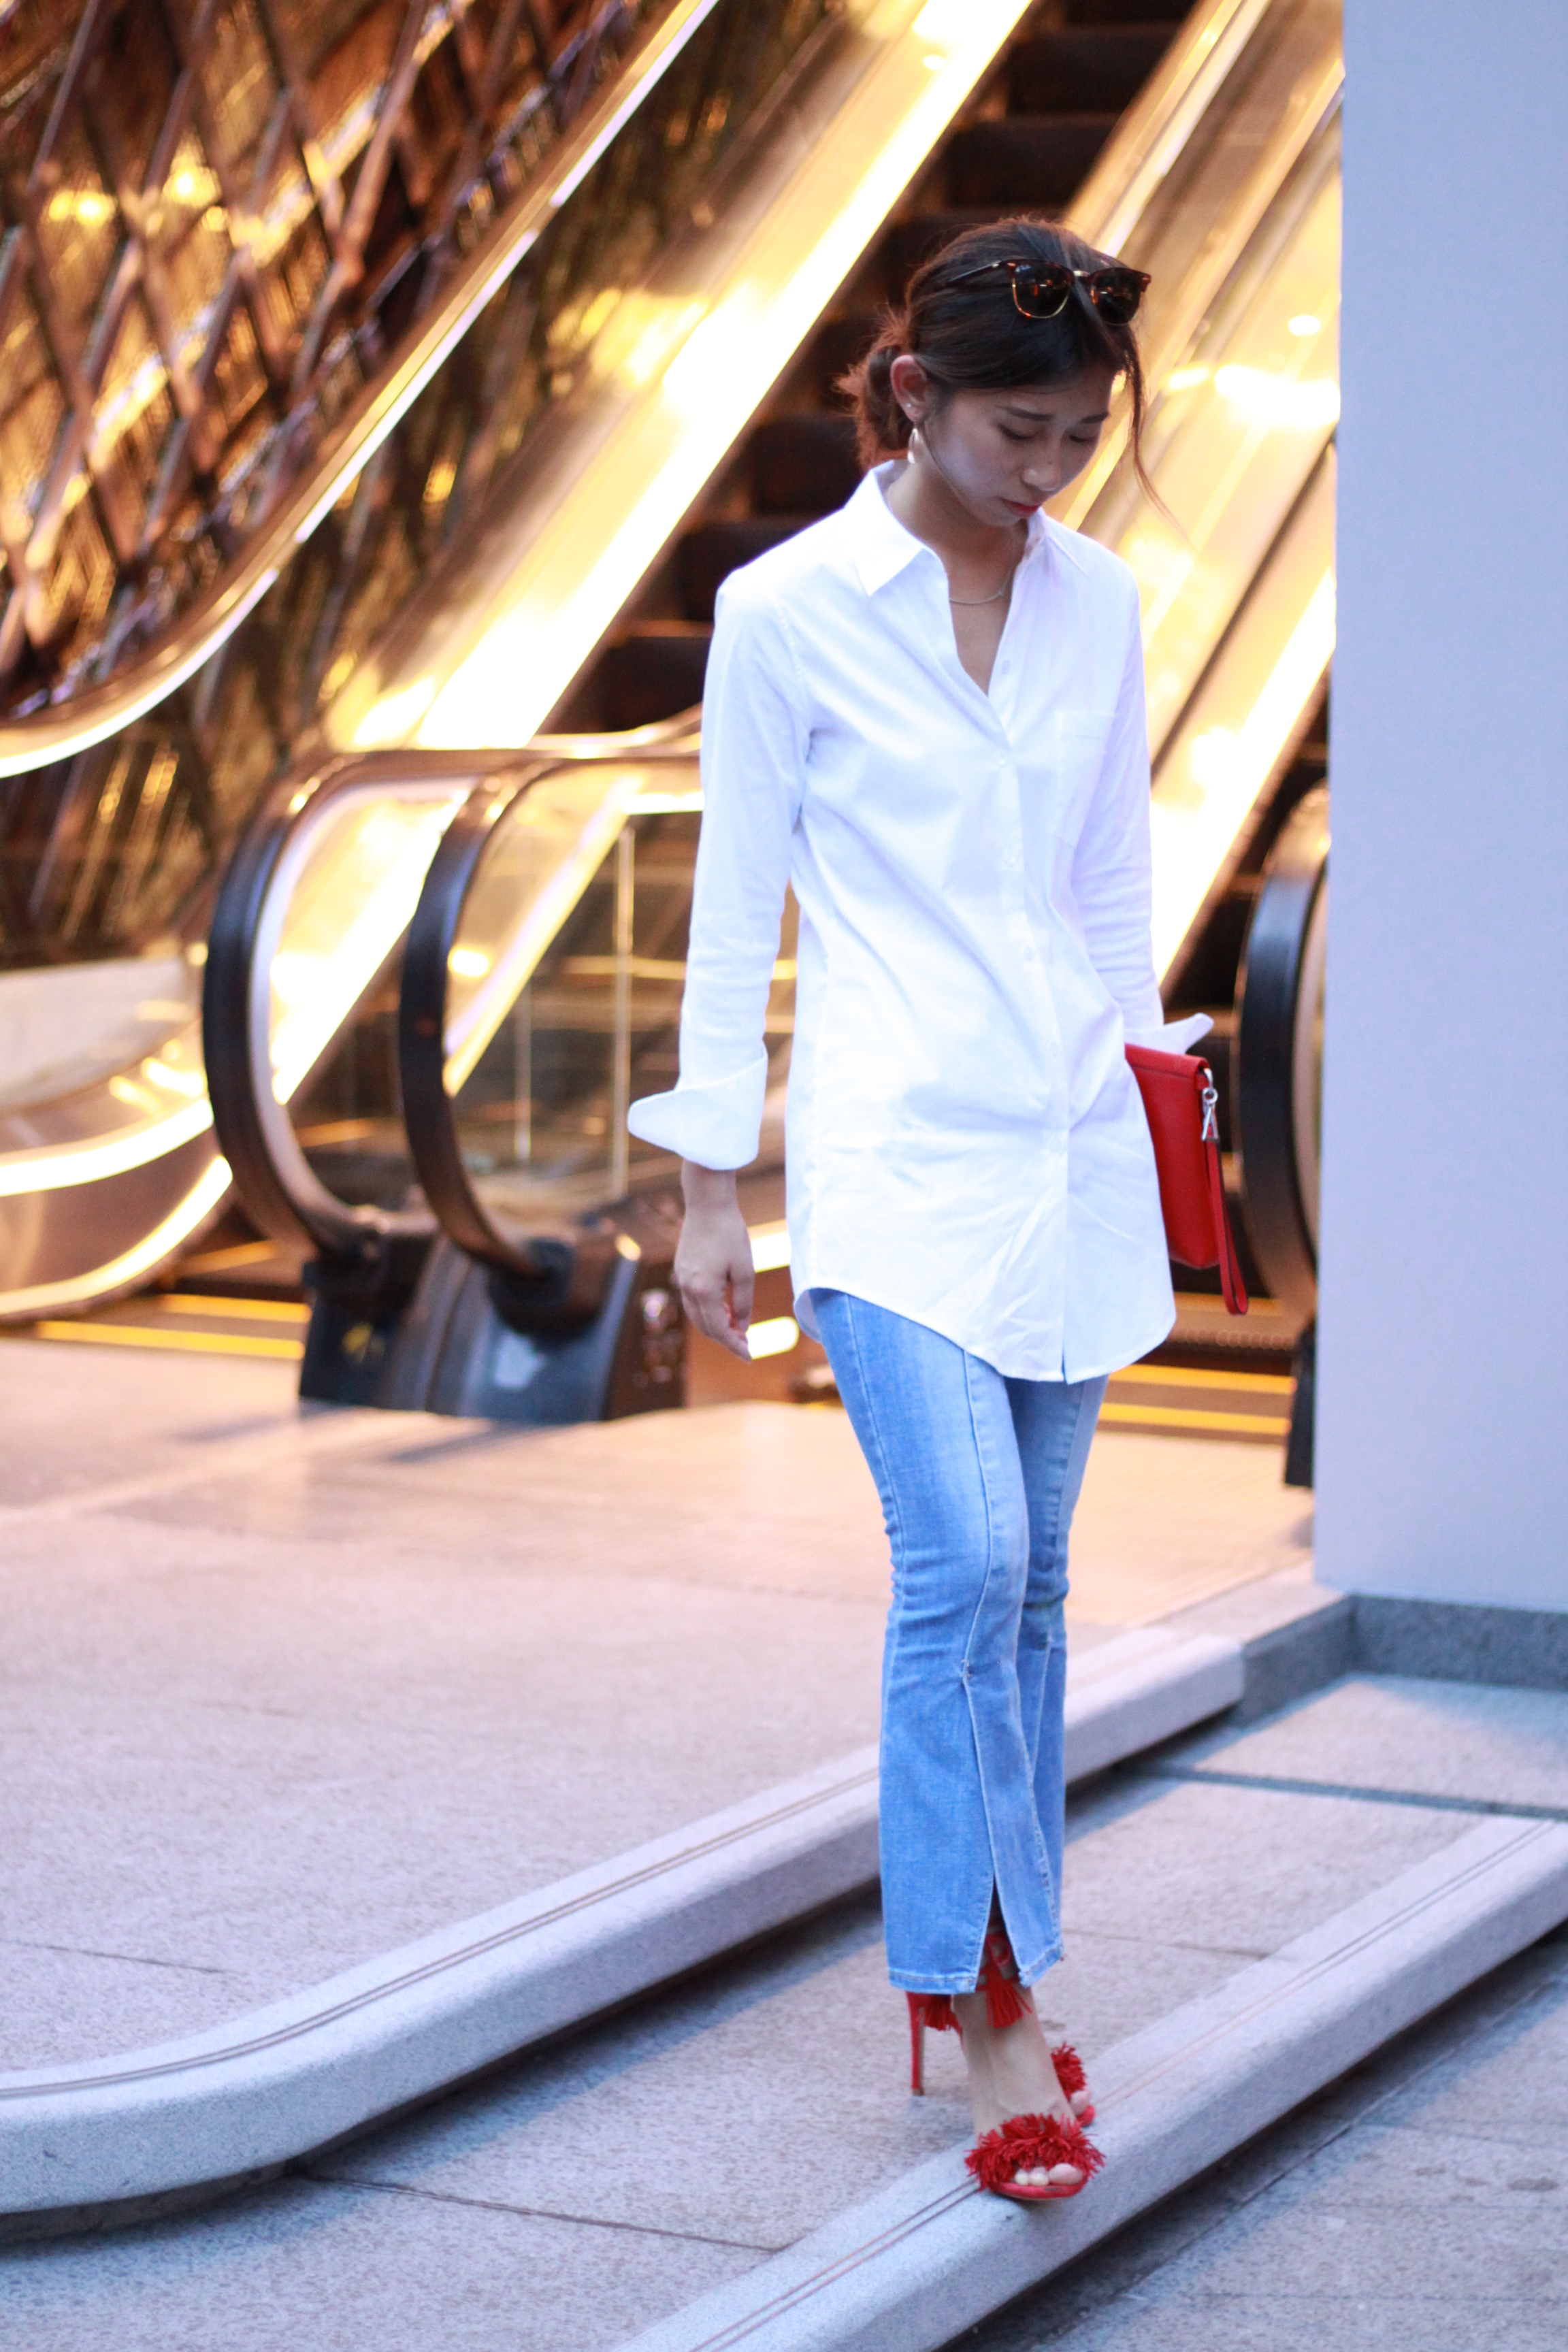 Theory  white shirt /  Amber  flared jeans / Steve Madden  red open toe pumps /  Agnes. b  red foldover clutch